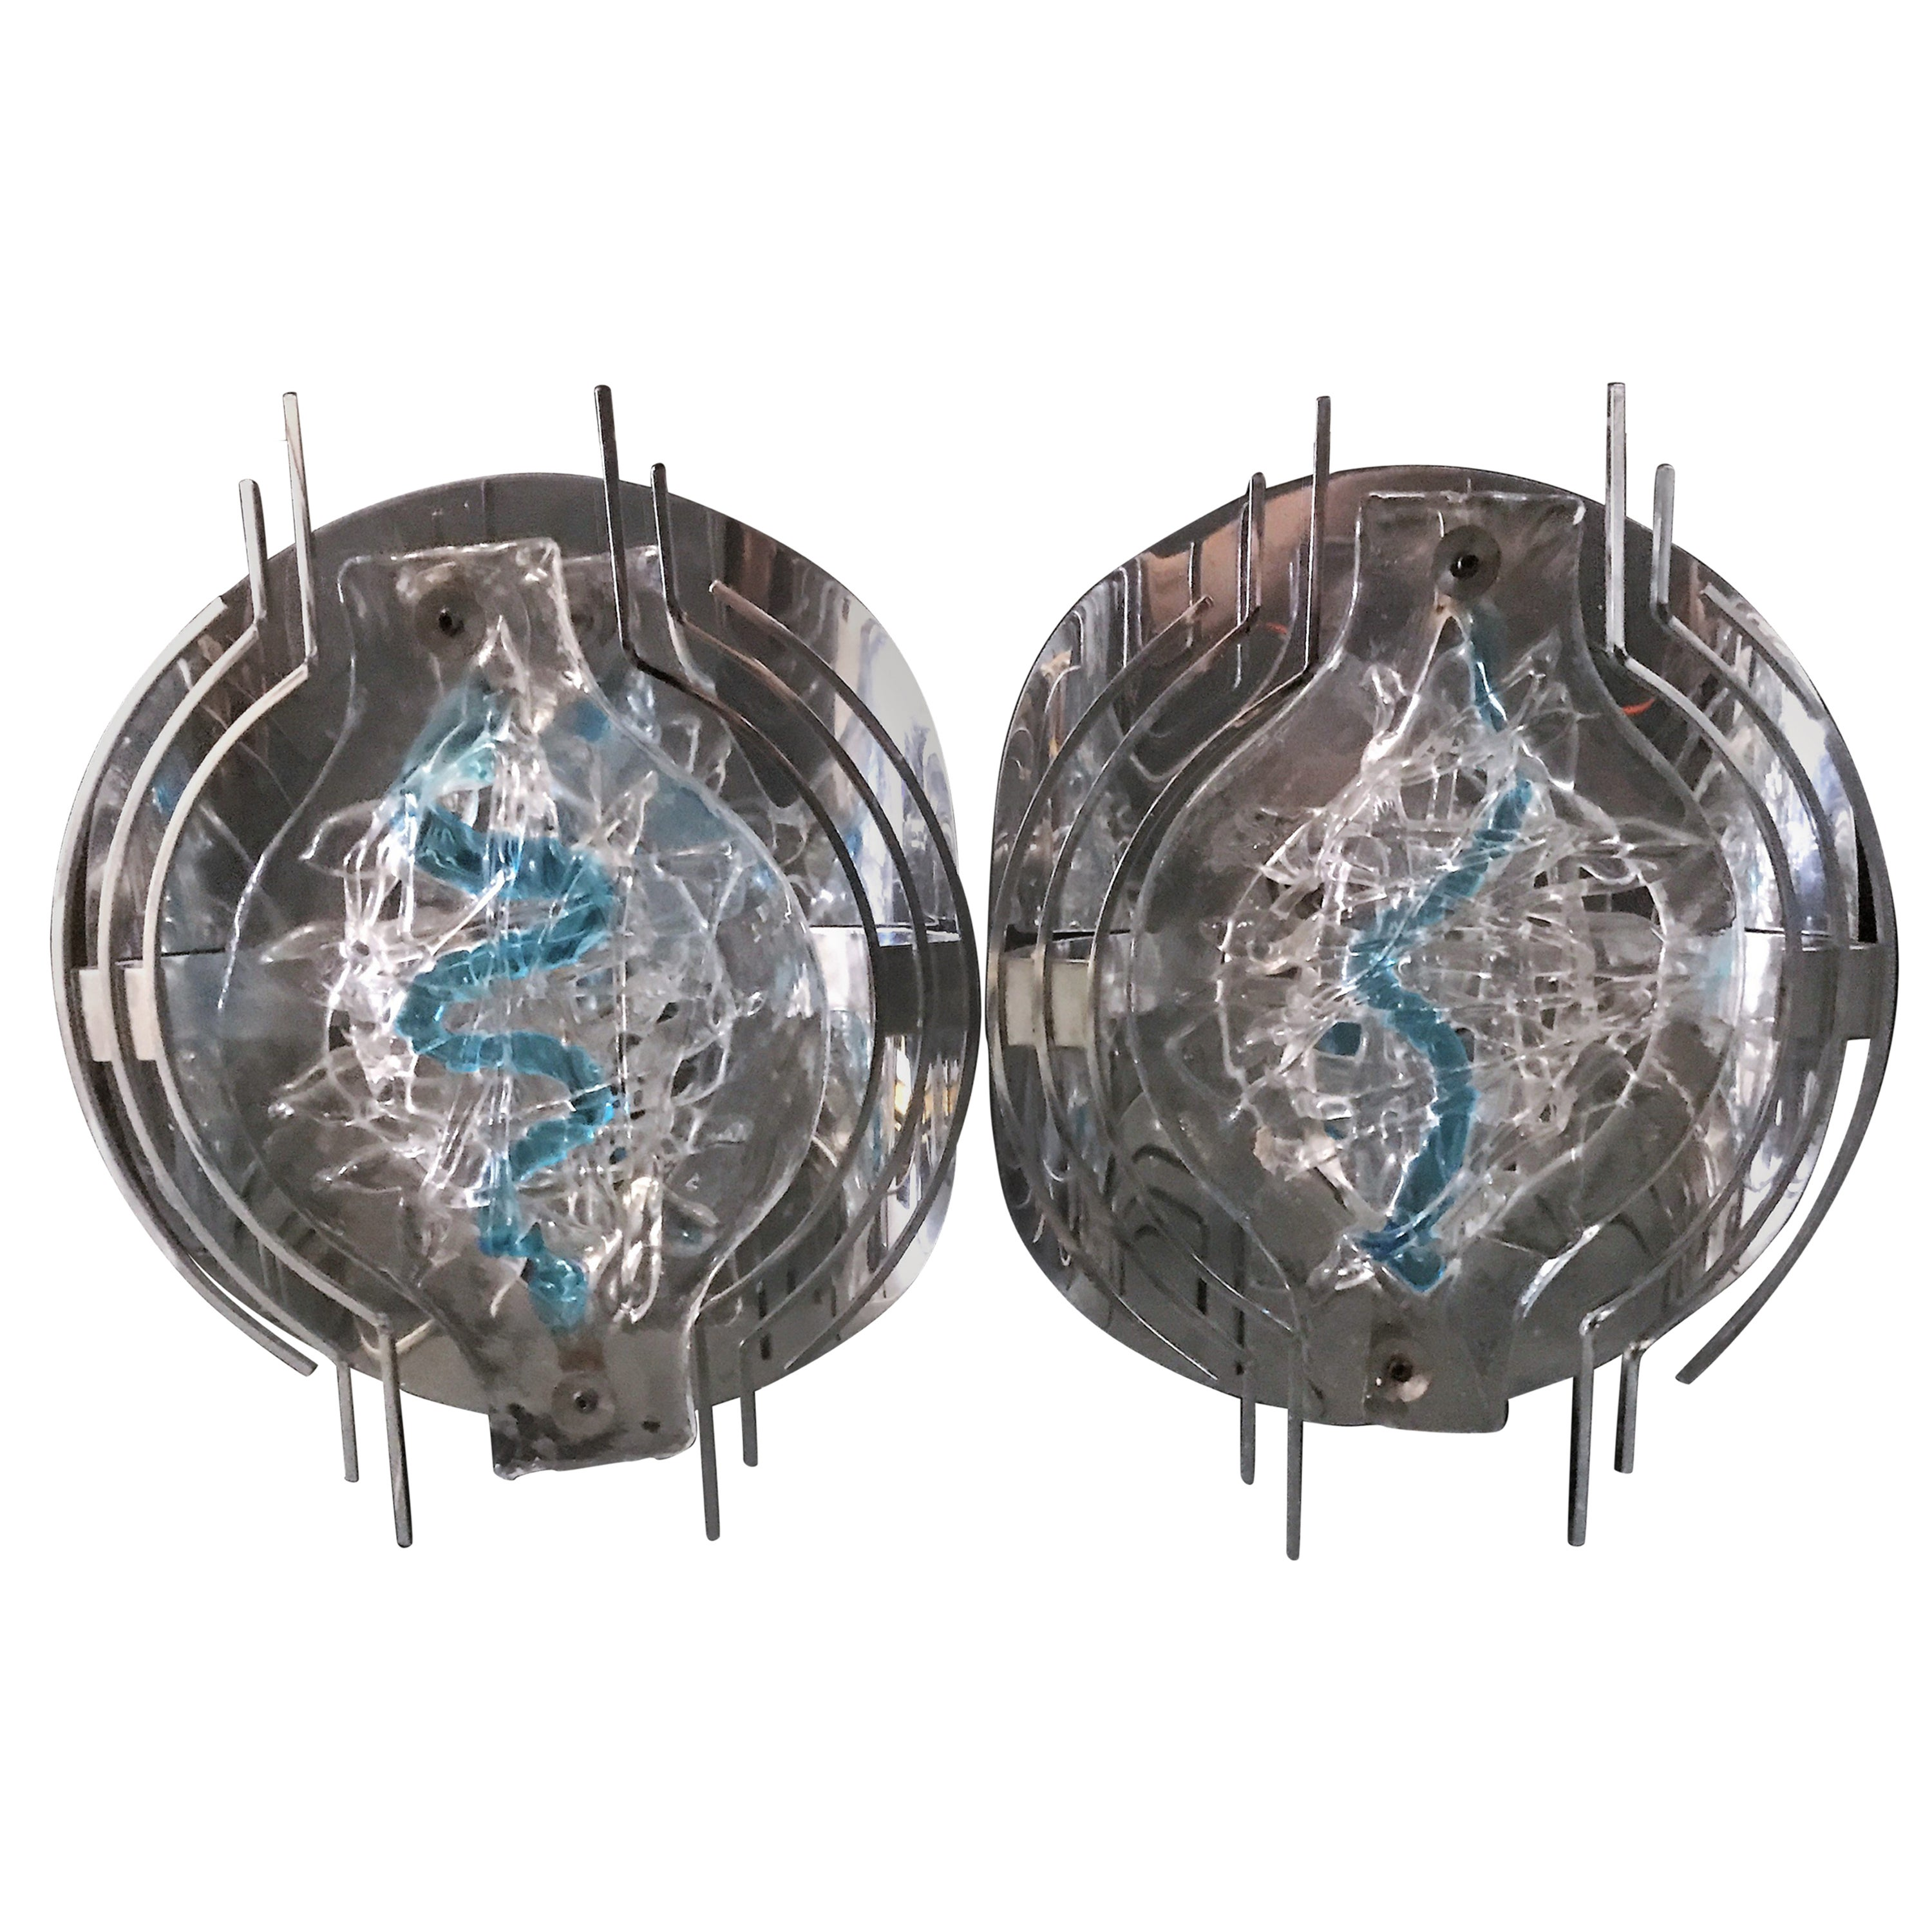 Pair of Angelo Brotto Sconces for Esperia in Stainless Steel and Murano Glass